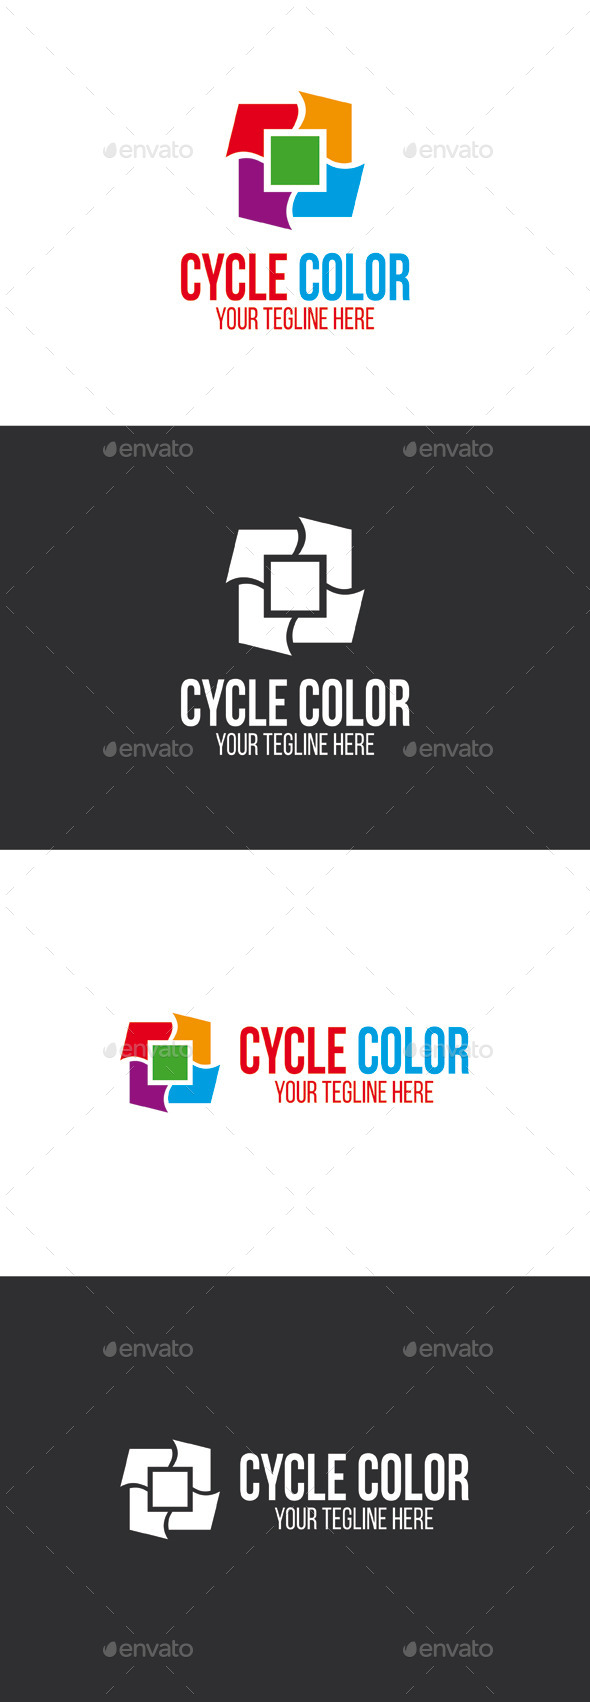 GraphicRiver Cycle Color Logo Template 9940155